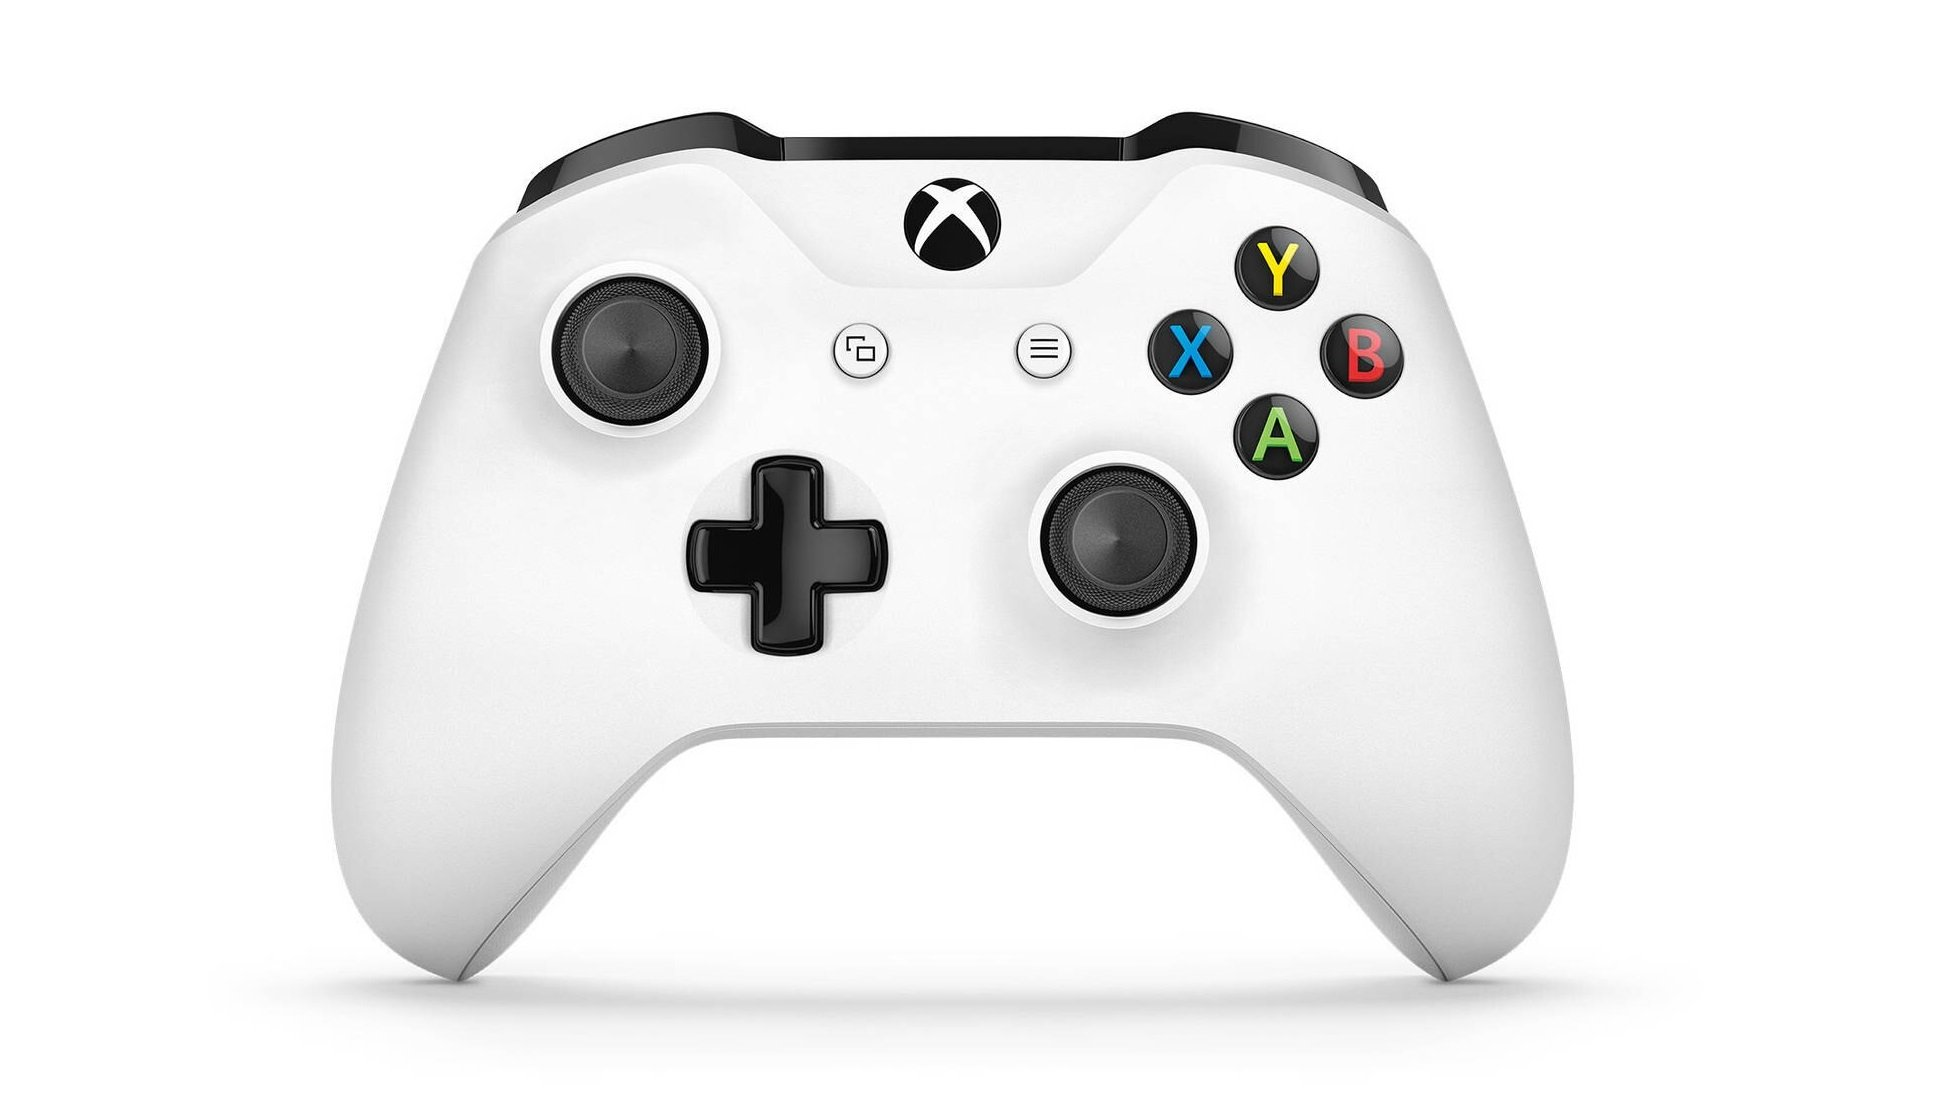 The Greenlit Content esports gaming lounge will offer over 30 Xbox One consoles and 50 Alienware gaming laptops.